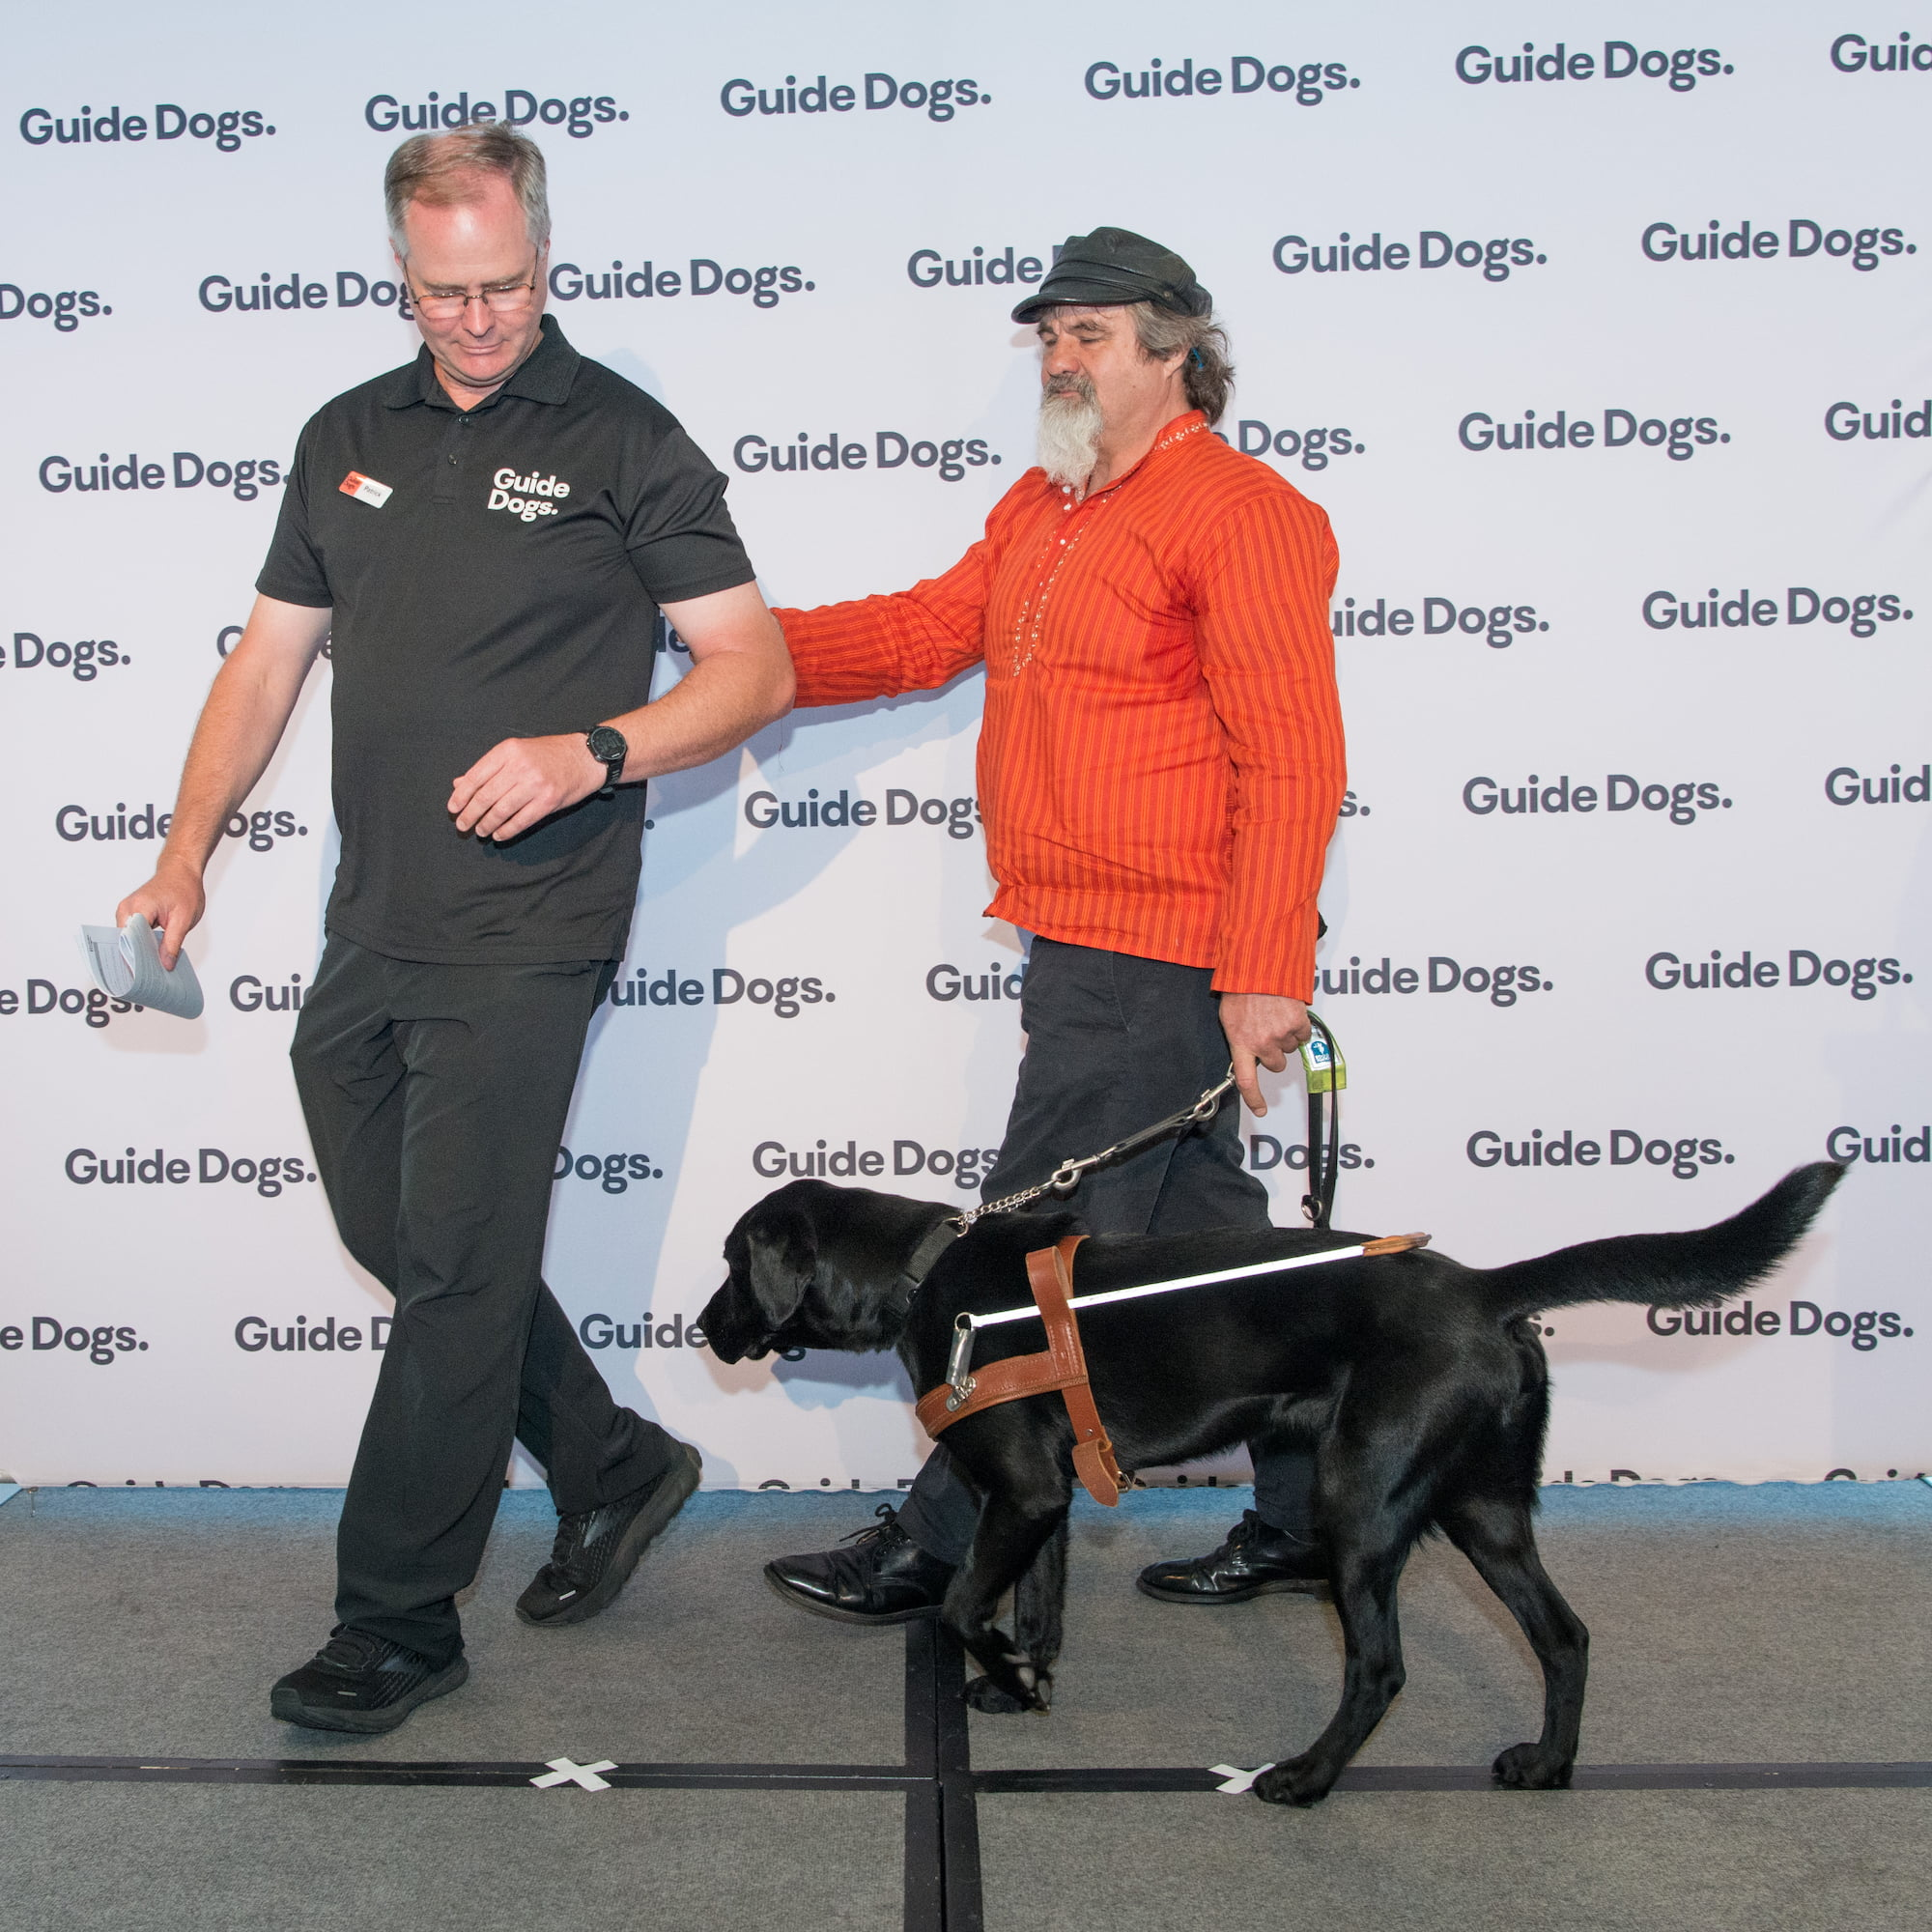 Guide Dogs Client Anthony with his Guide Dog Kit, a black Labrador wearing a harness, being led on stage by a Guide Dogs staff member.